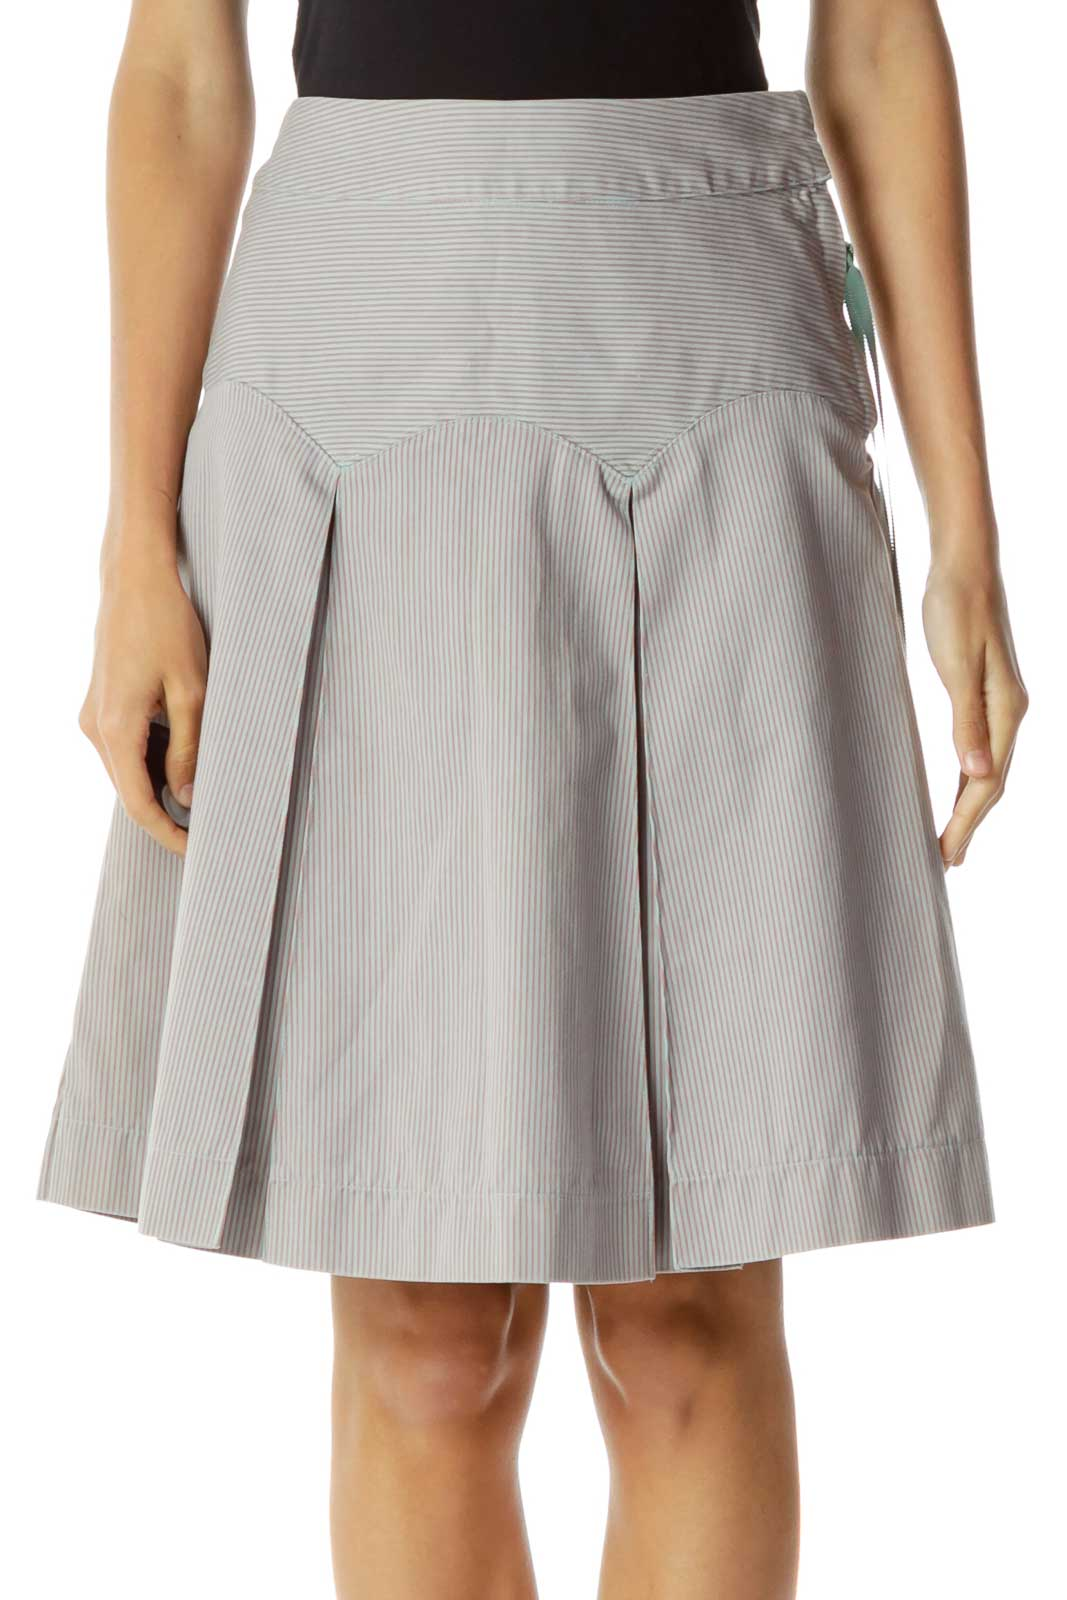 Purple Pink Pinstripe A-Line Skirt Front